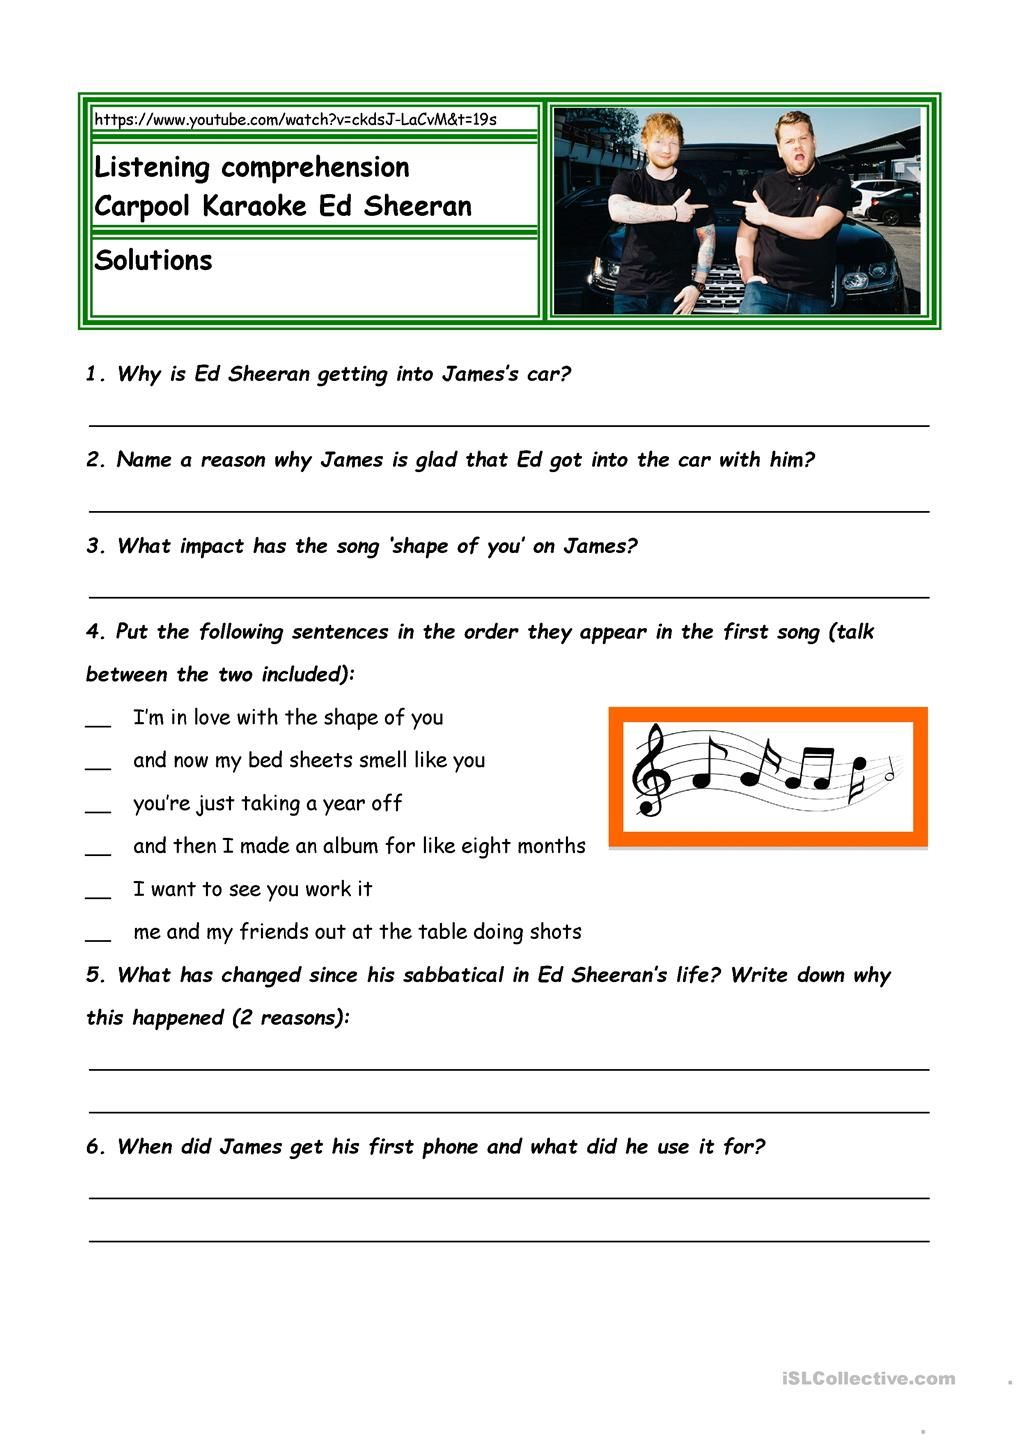 Worksheets Listening Comprehension Worksheets listening comprehension carpool karaoke ed sheeran esl activities comprehension